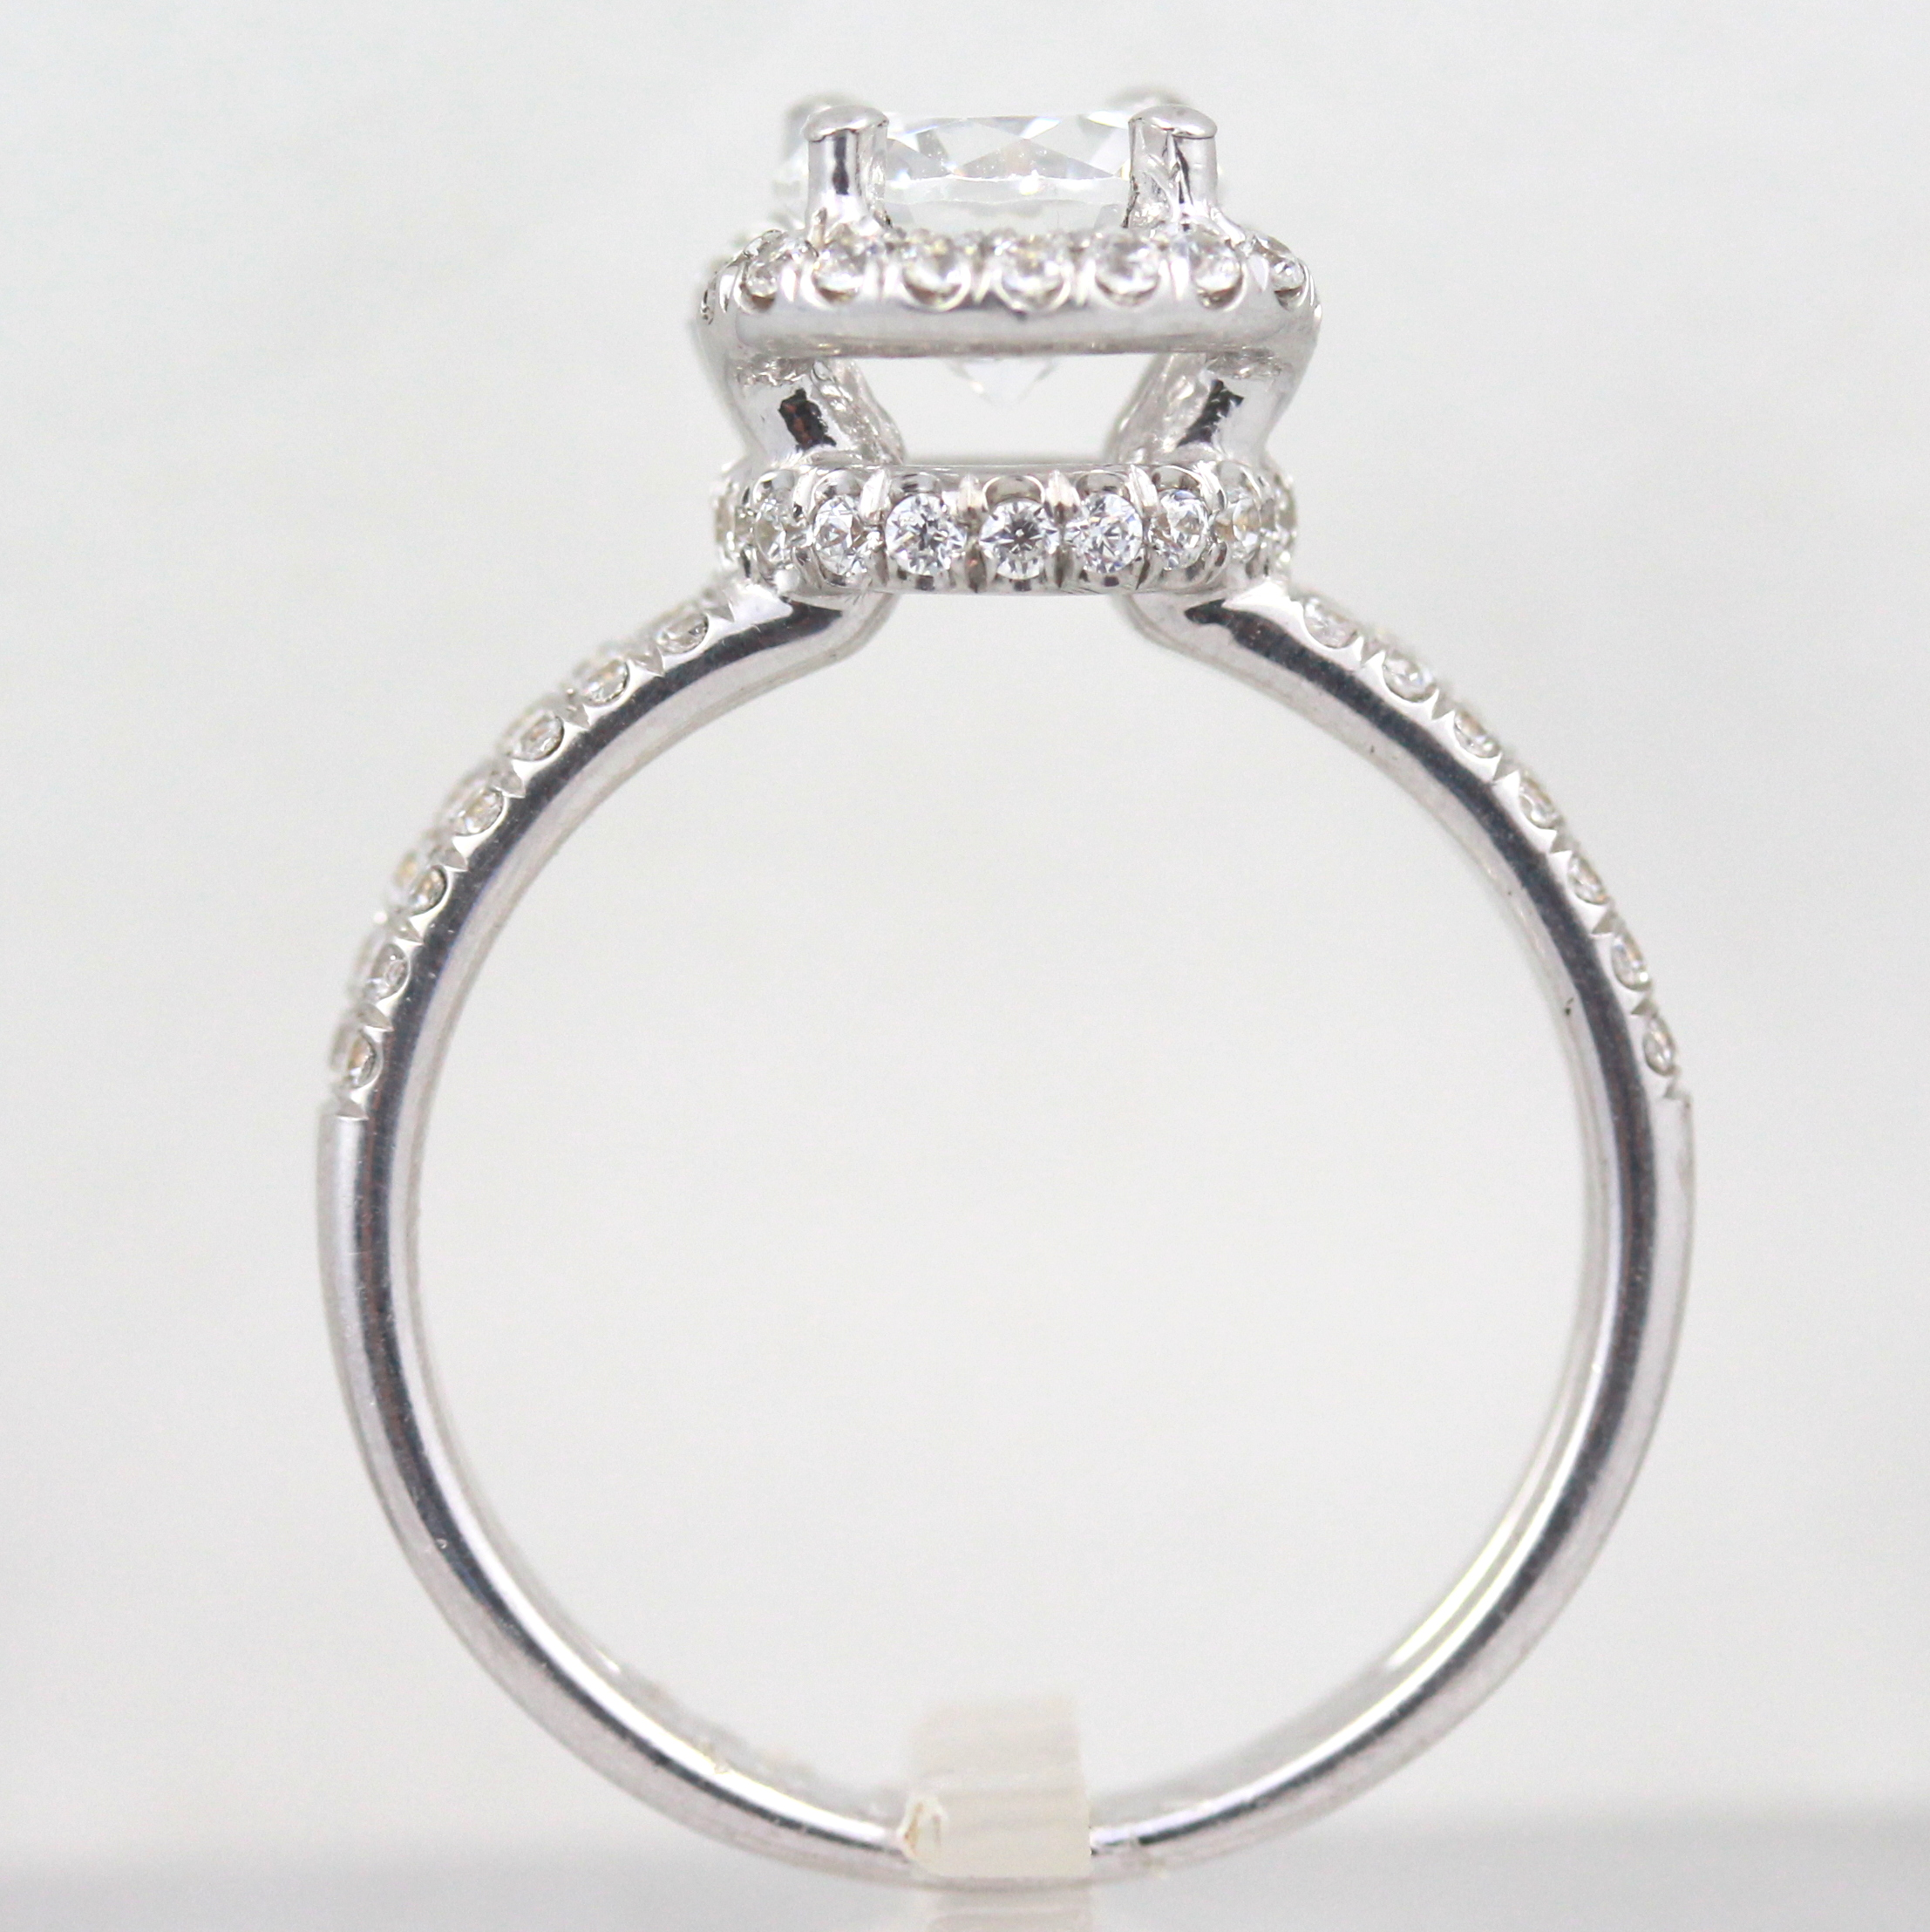 Halo Diamond Ring 4 Prongs 2 Ct 14 Kt White Gold Two Rows Size 45 6 75 9